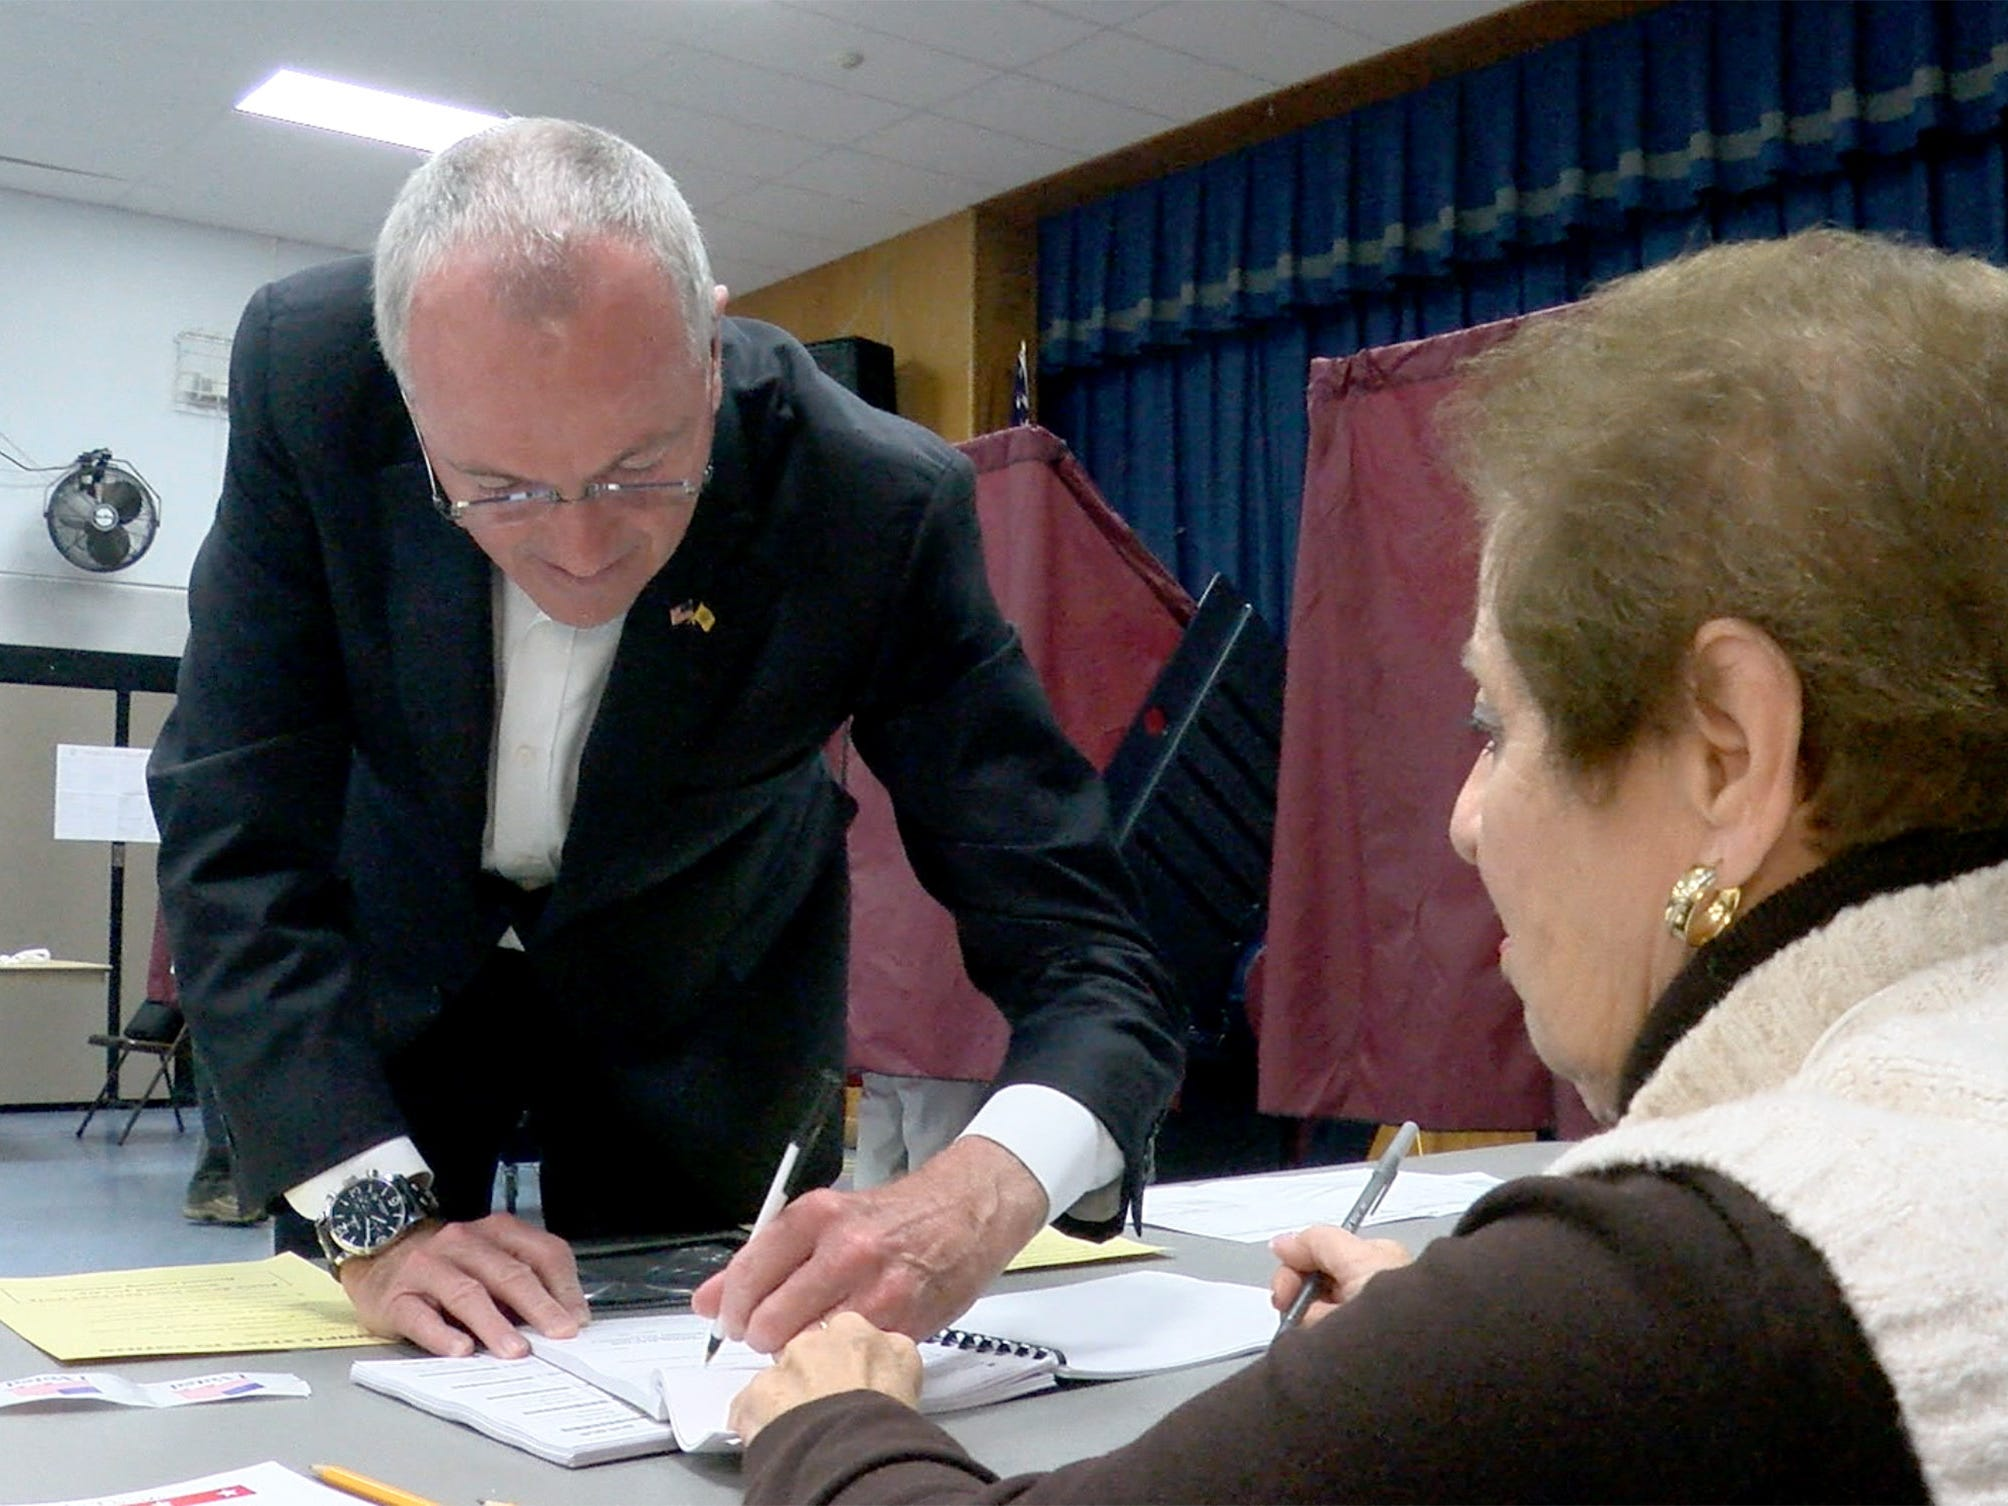 NJ Governor Phil Murphy signs in with a poll worker as he prepares to vote at the Fairview Elementary School in Middletown Tuesday, November 6, 2018.